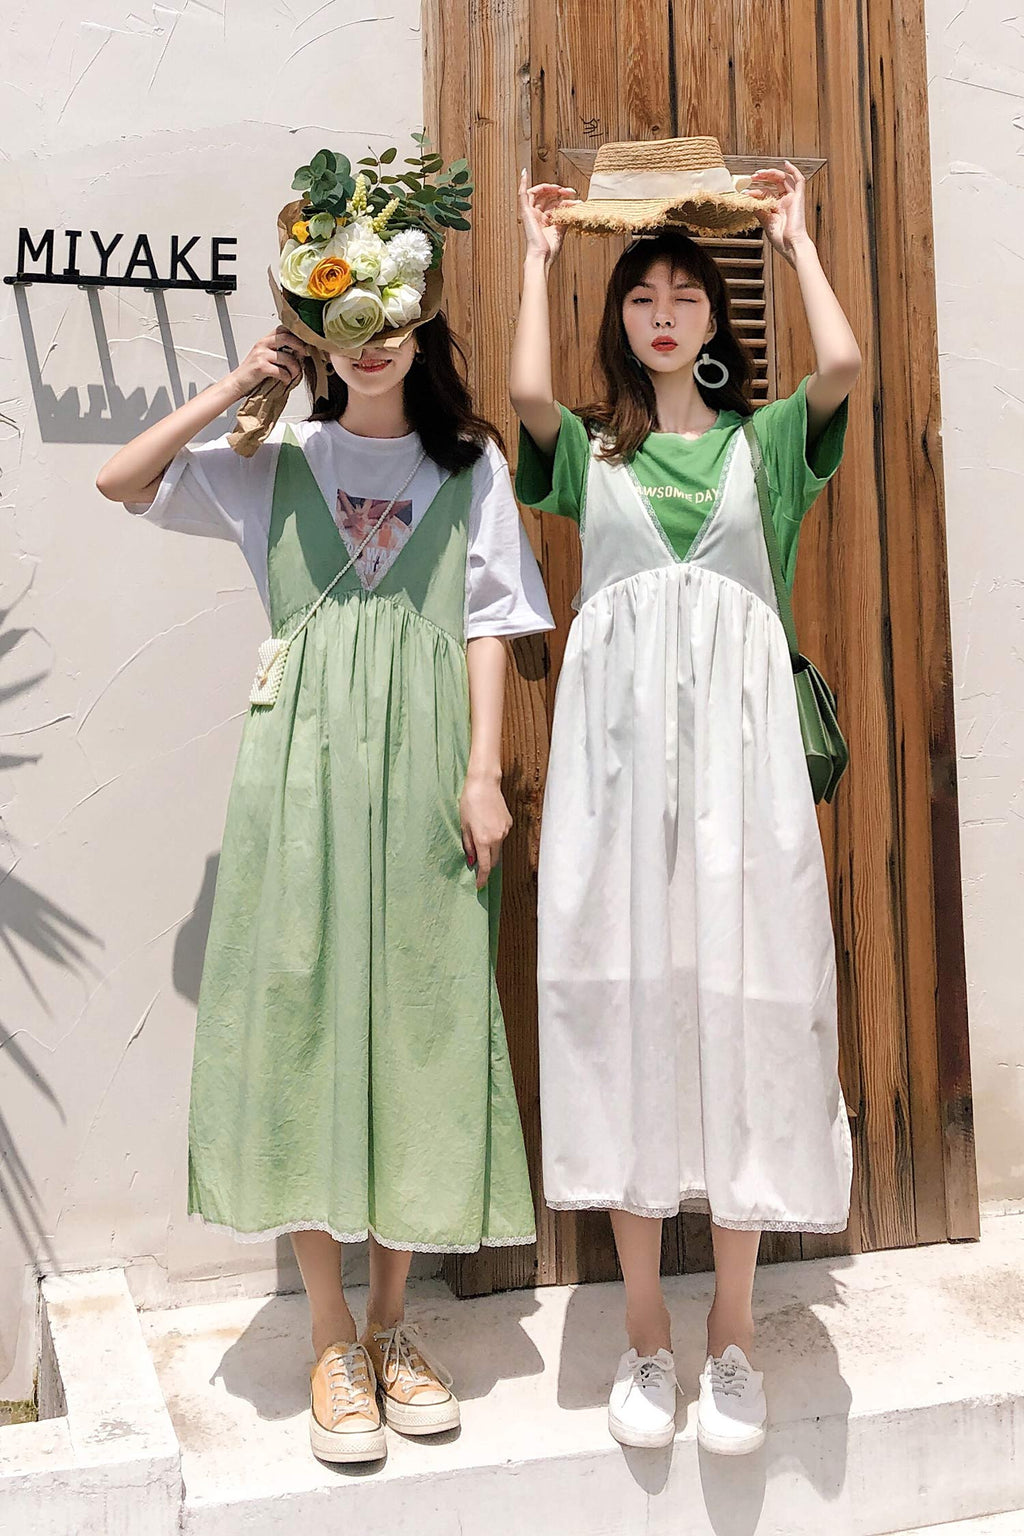 Avocado Fruit Green Sister Dress - 7GEGE